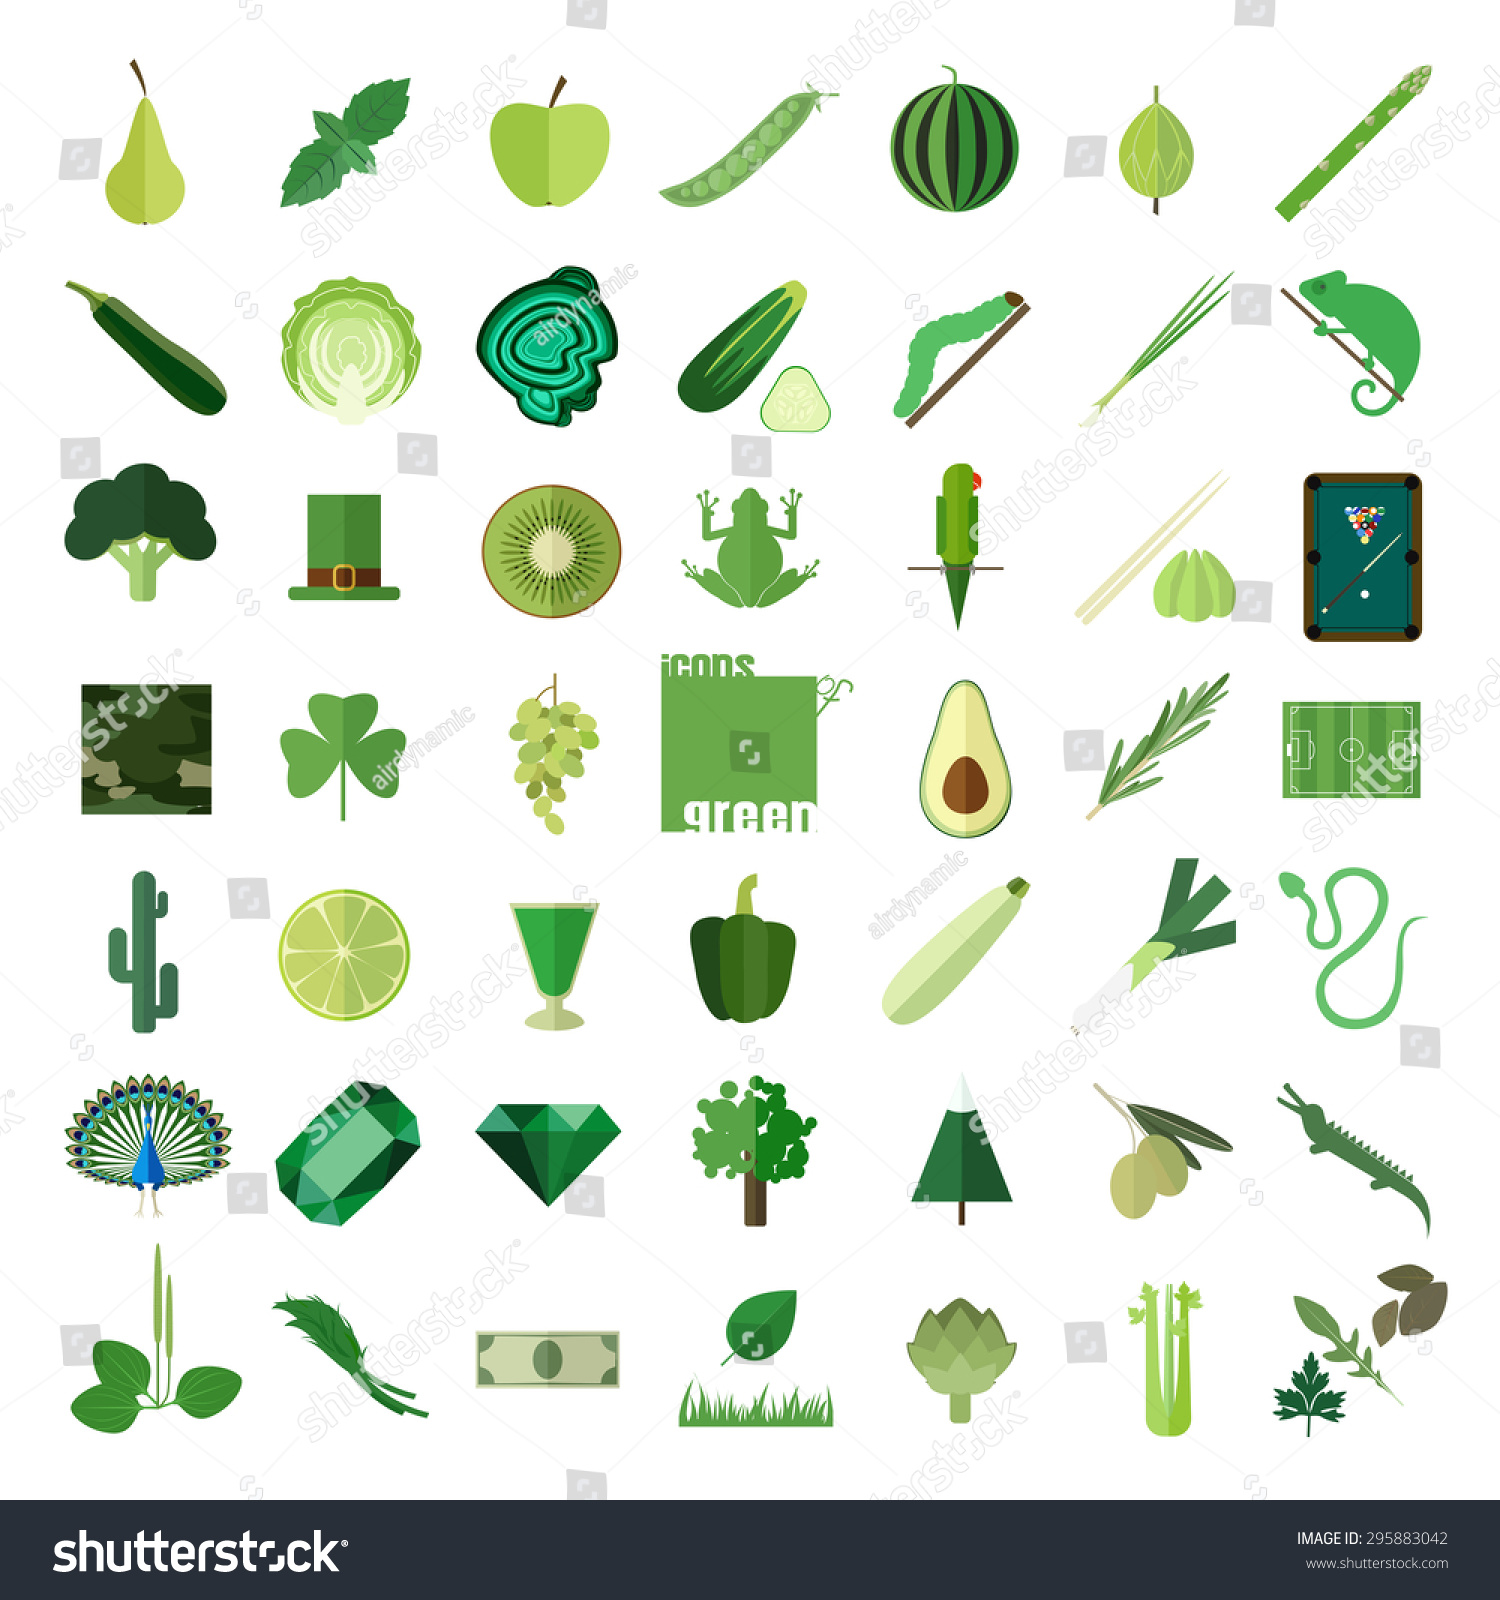 Objects That Are Green Gallery